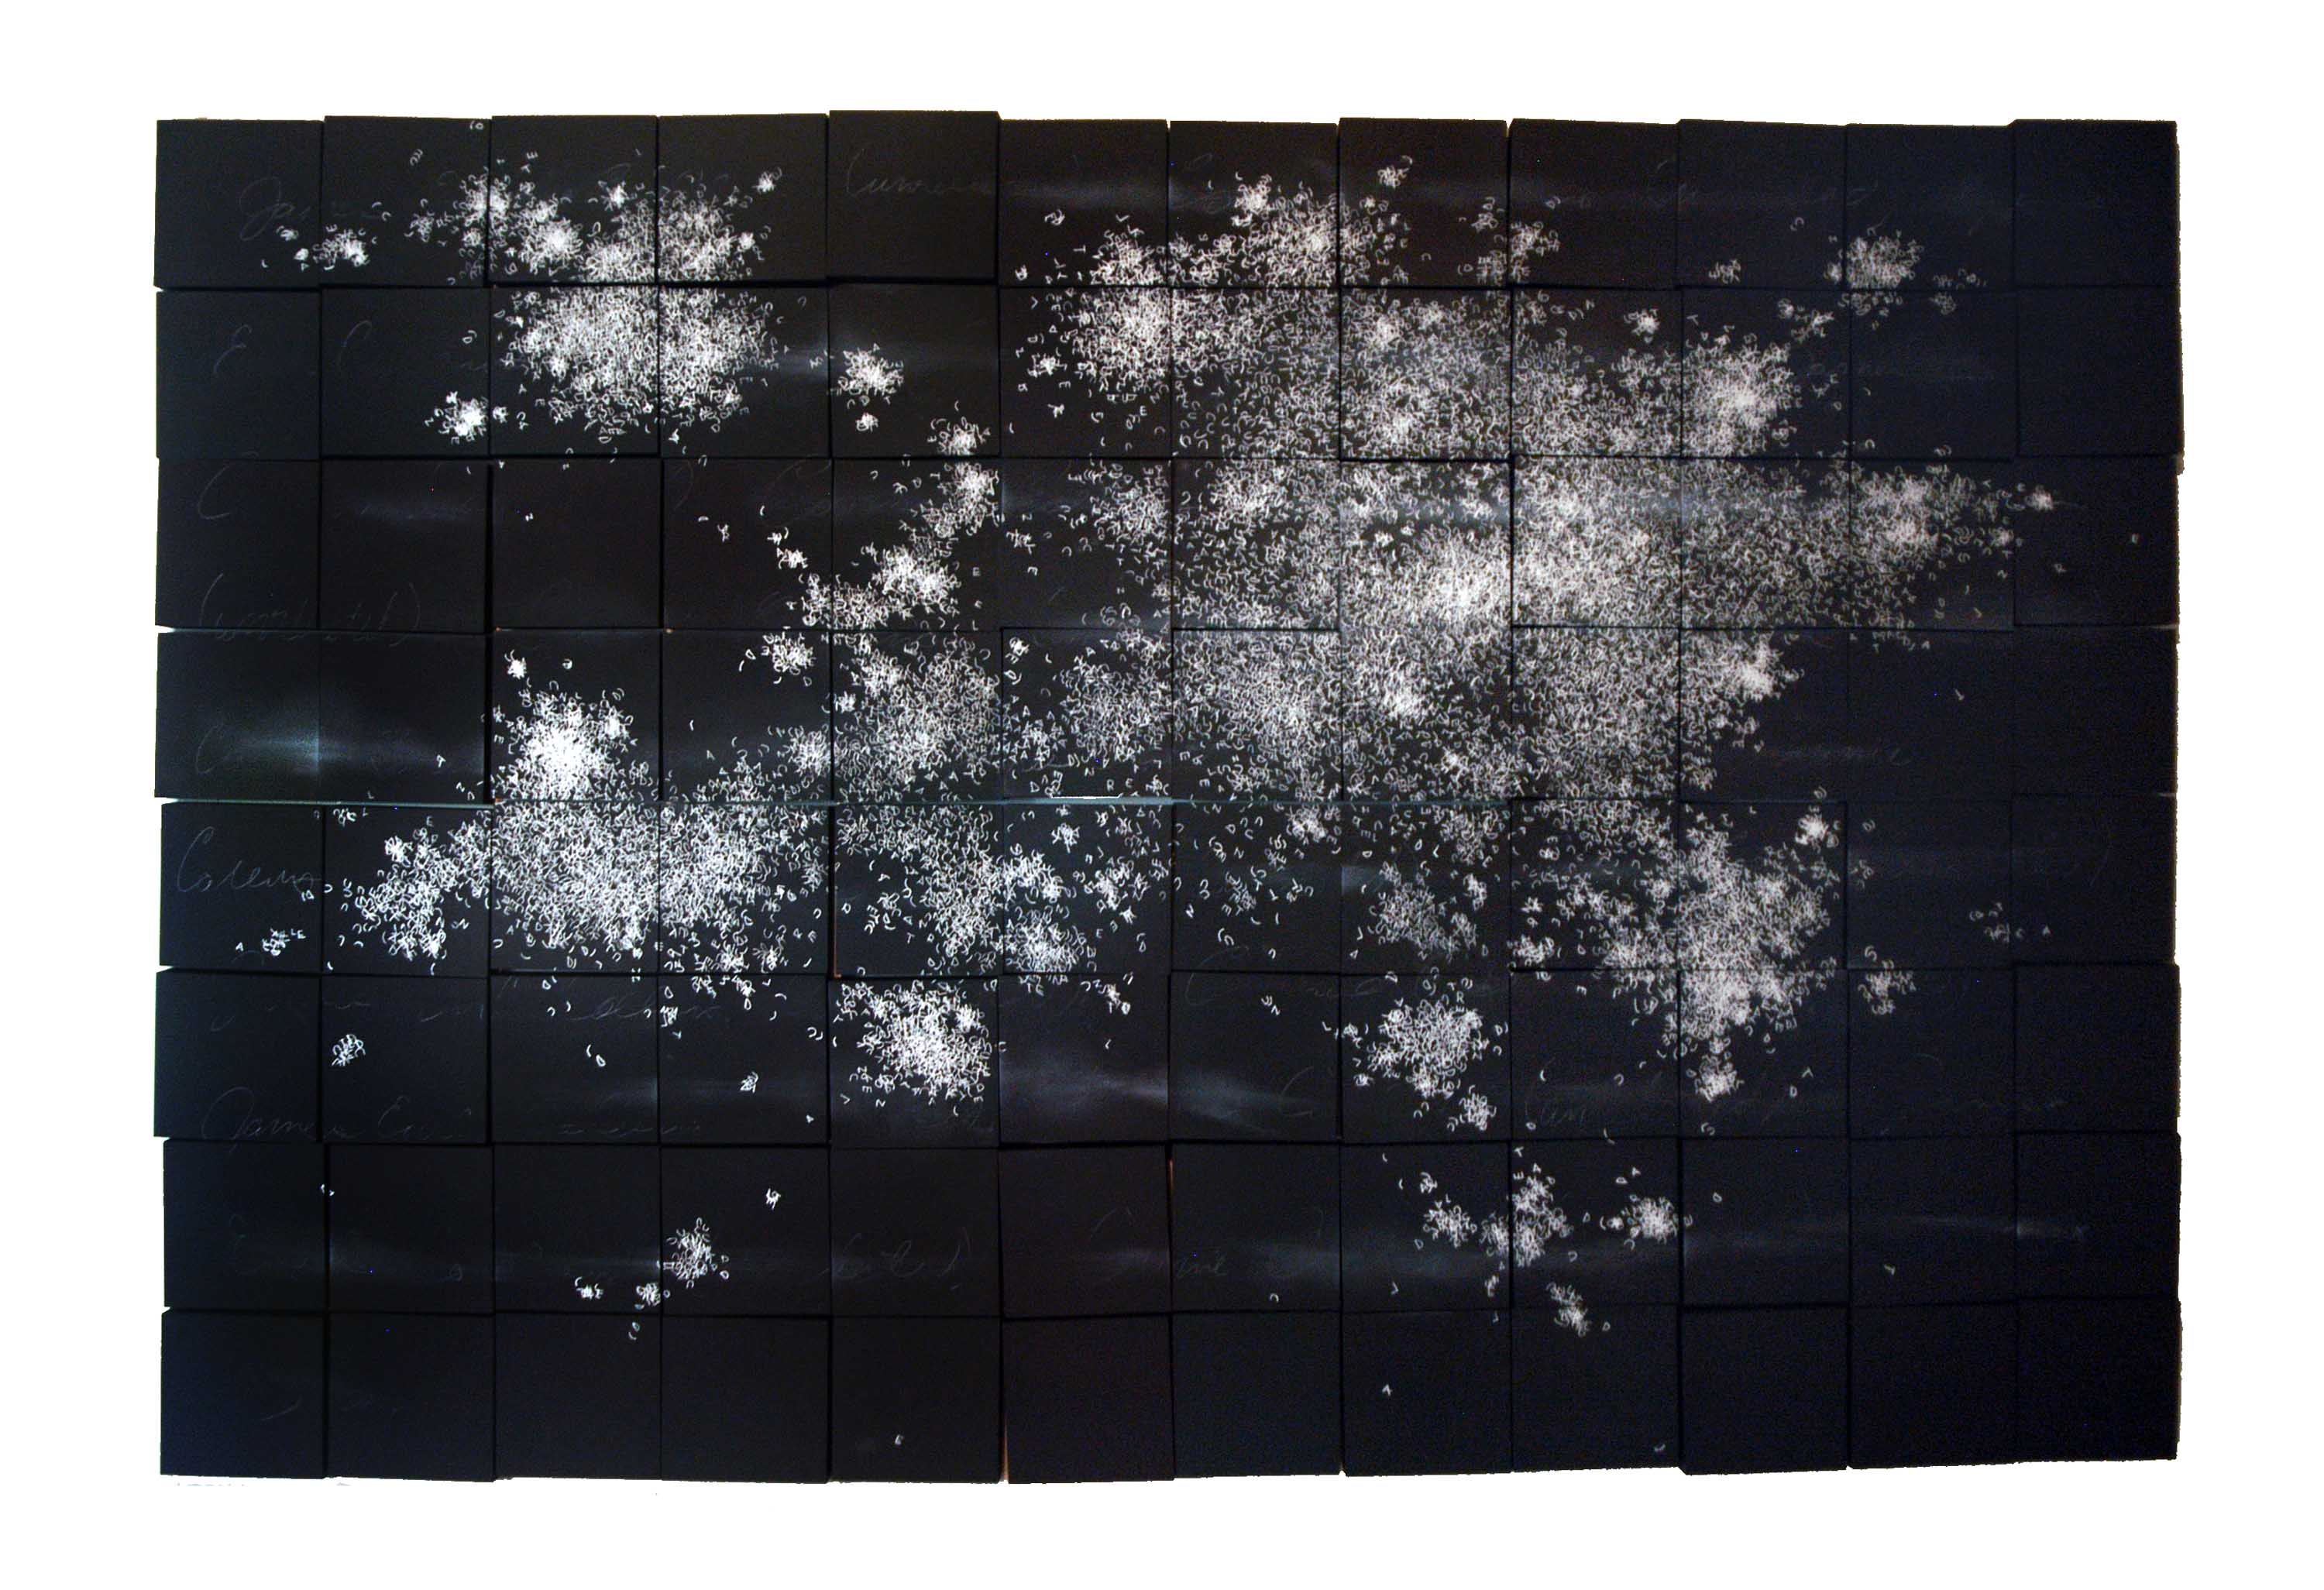 Bethany Collins, (Unrelated), 2012, chalk, charcoal, latex paint on panel, 48 x 72 x 2 inches